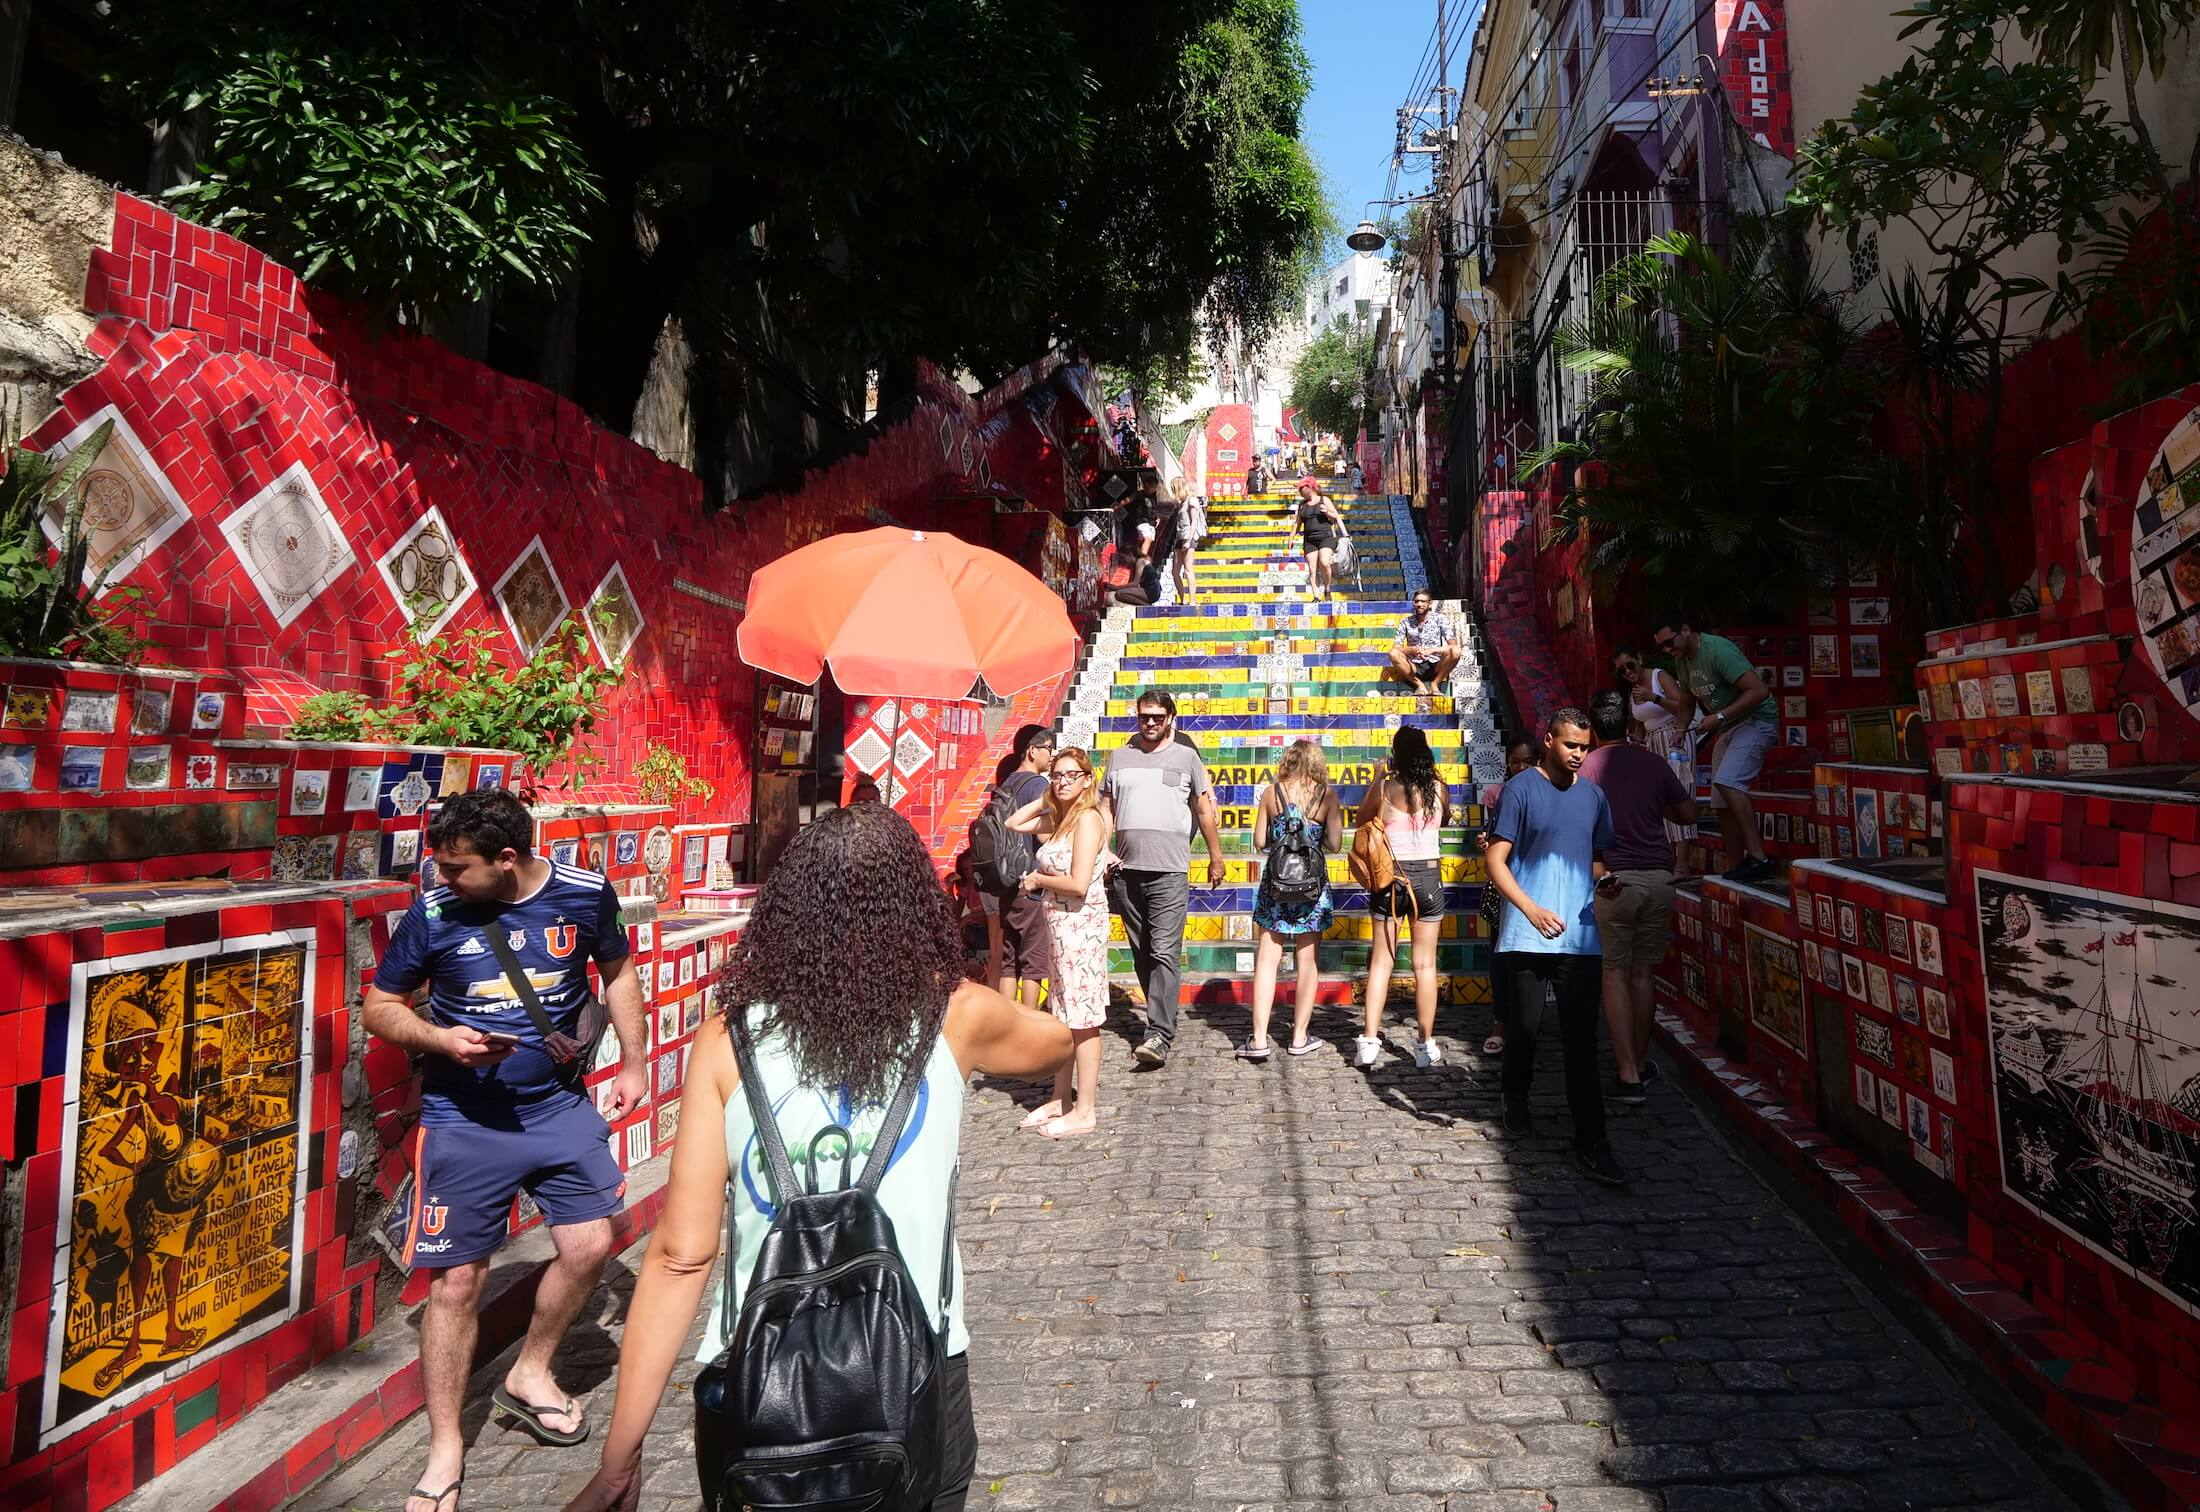 Worth a visit to the Escadaria Selaron, the Selaron Steps are beautiful.